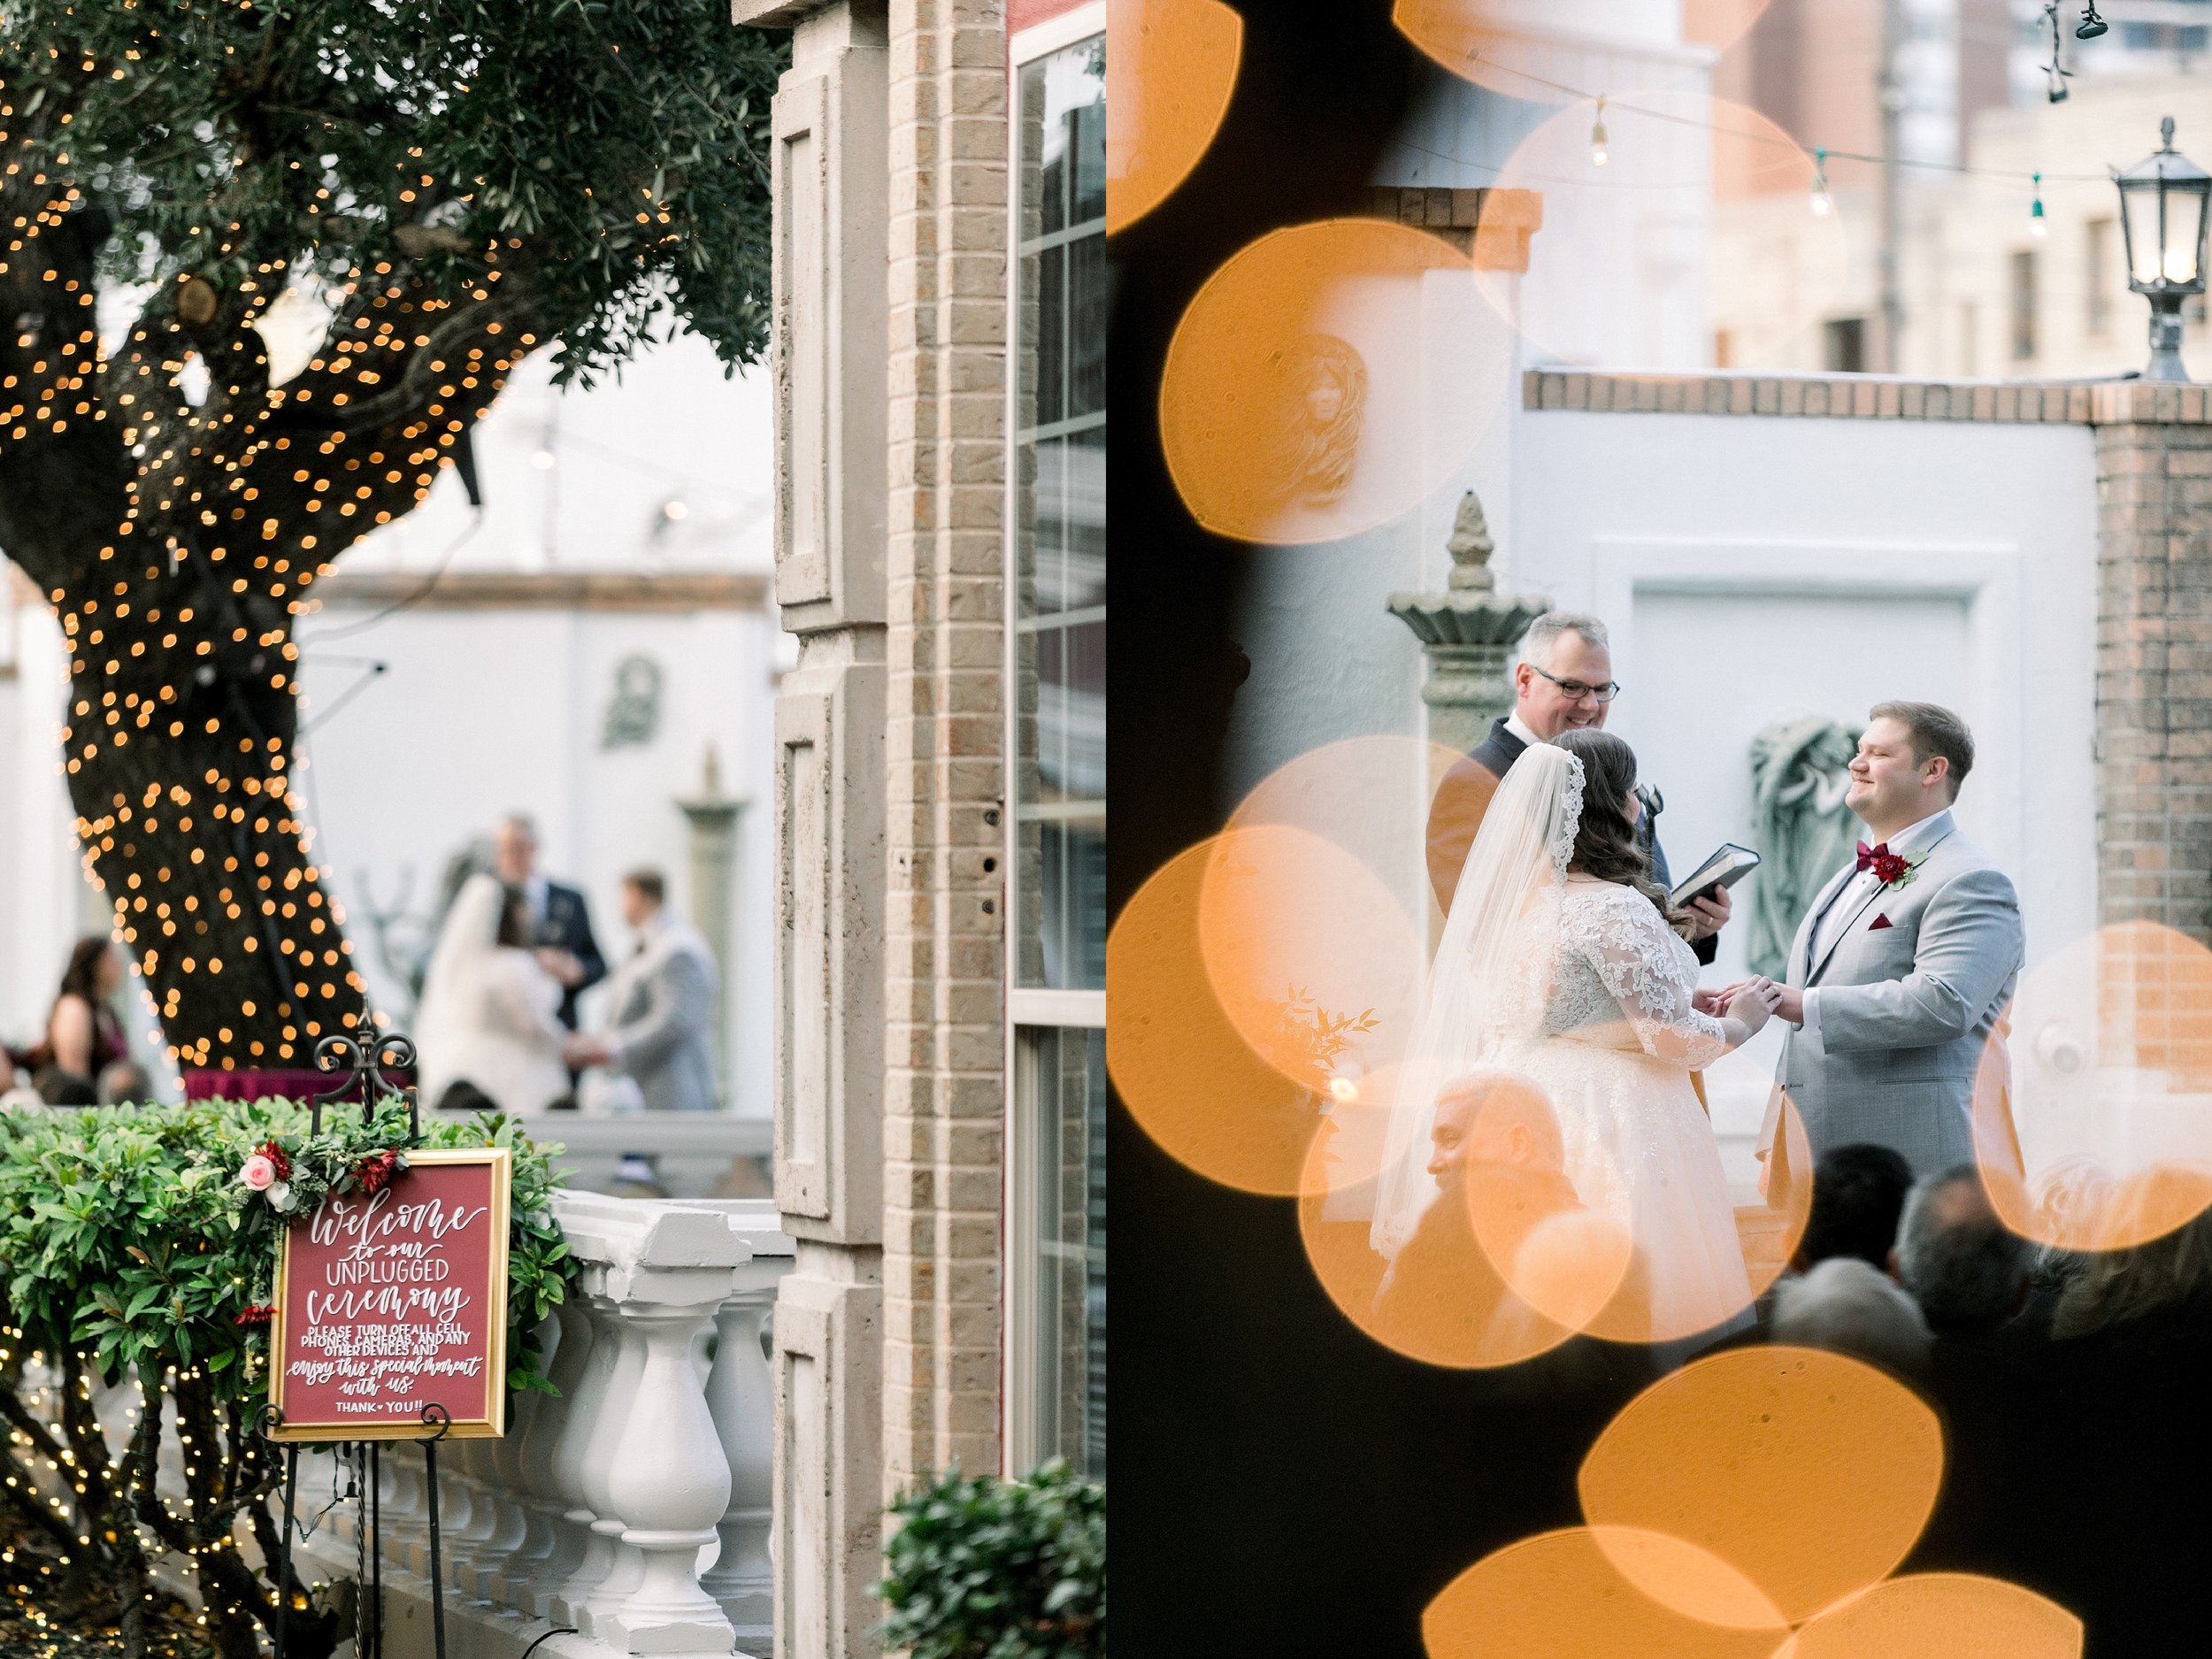 gaslight-at-courtyard-square-corpus-christi-wedding-omni-hotel-fall-winter-wedding-texas-wedding-photographer-lauren-pinson-0070.jpg